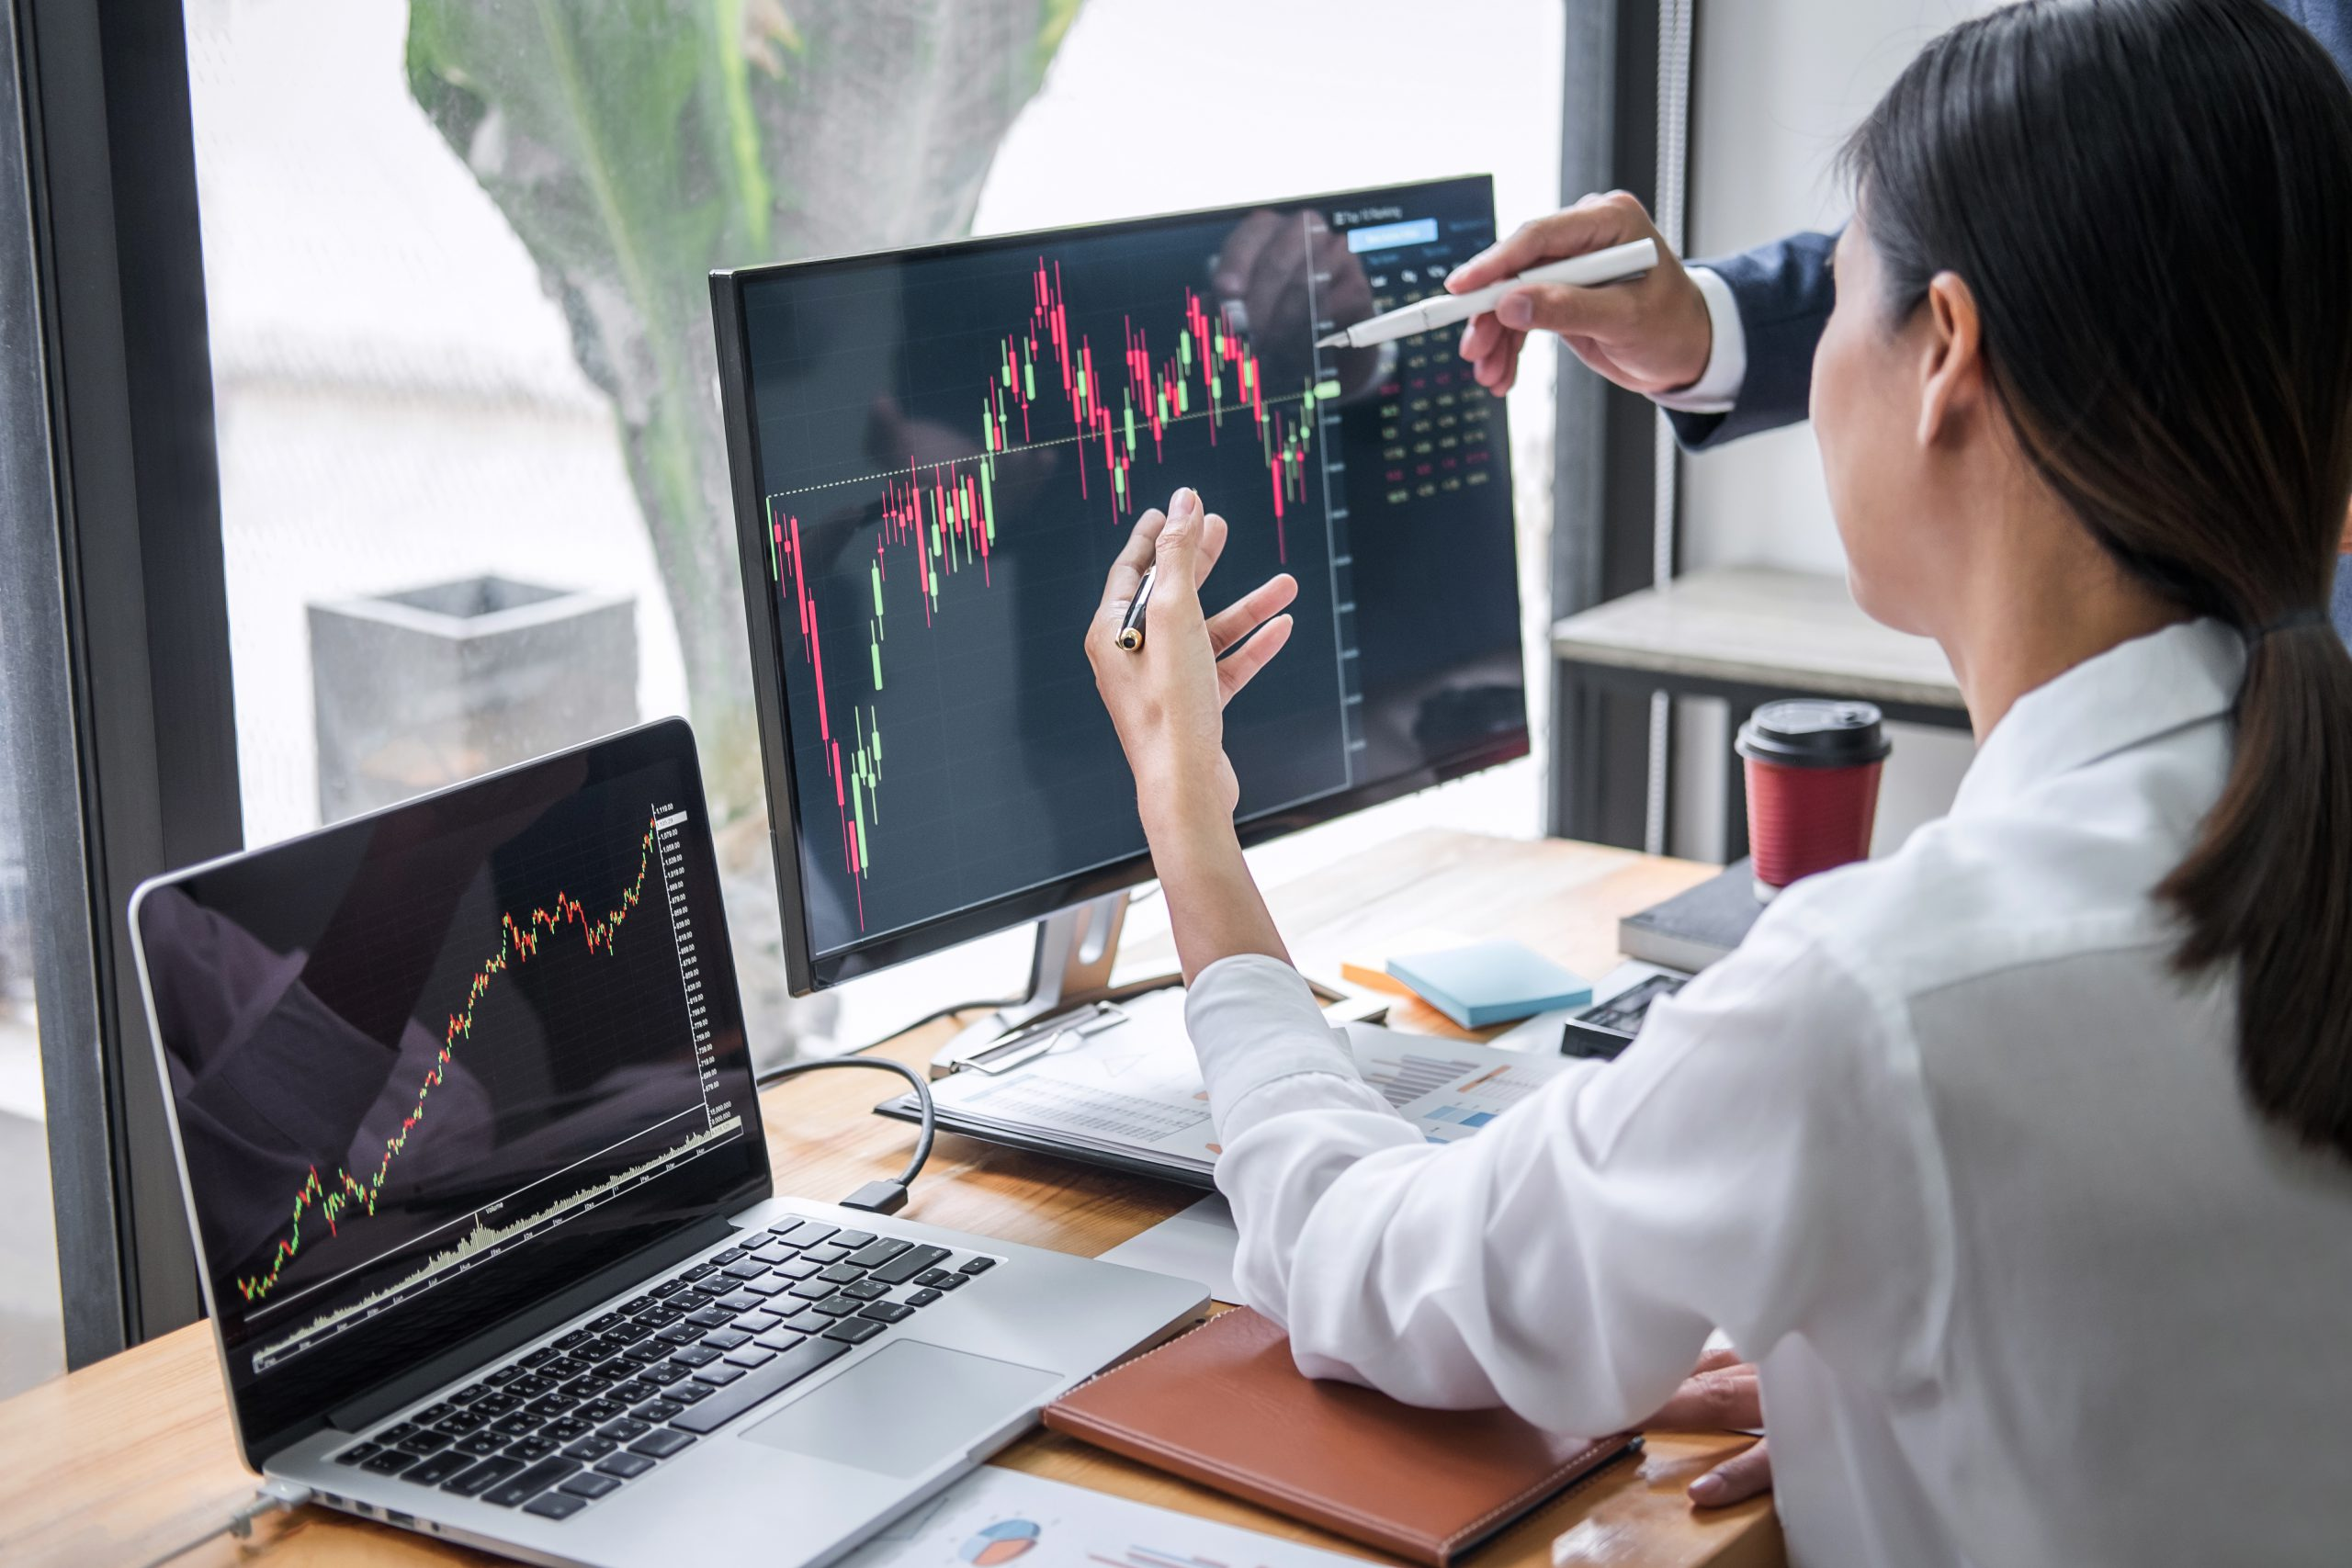 PAYC: 4 Top Tech Stocks to Buy Before 2021